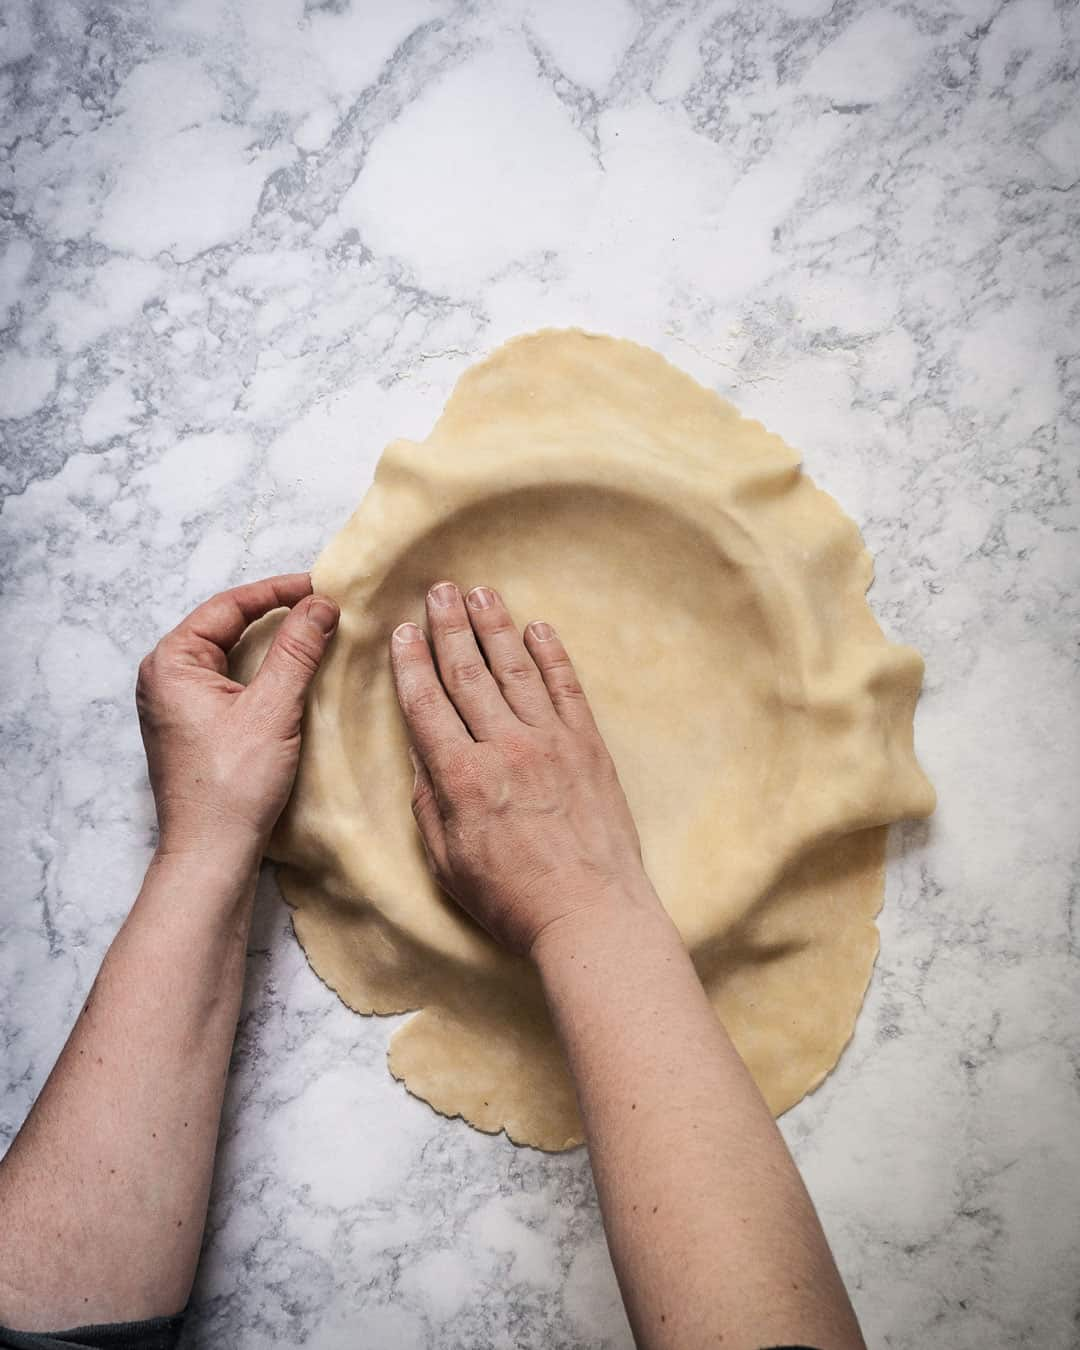 Marble surface with hands pressing pie dough into a pie dish